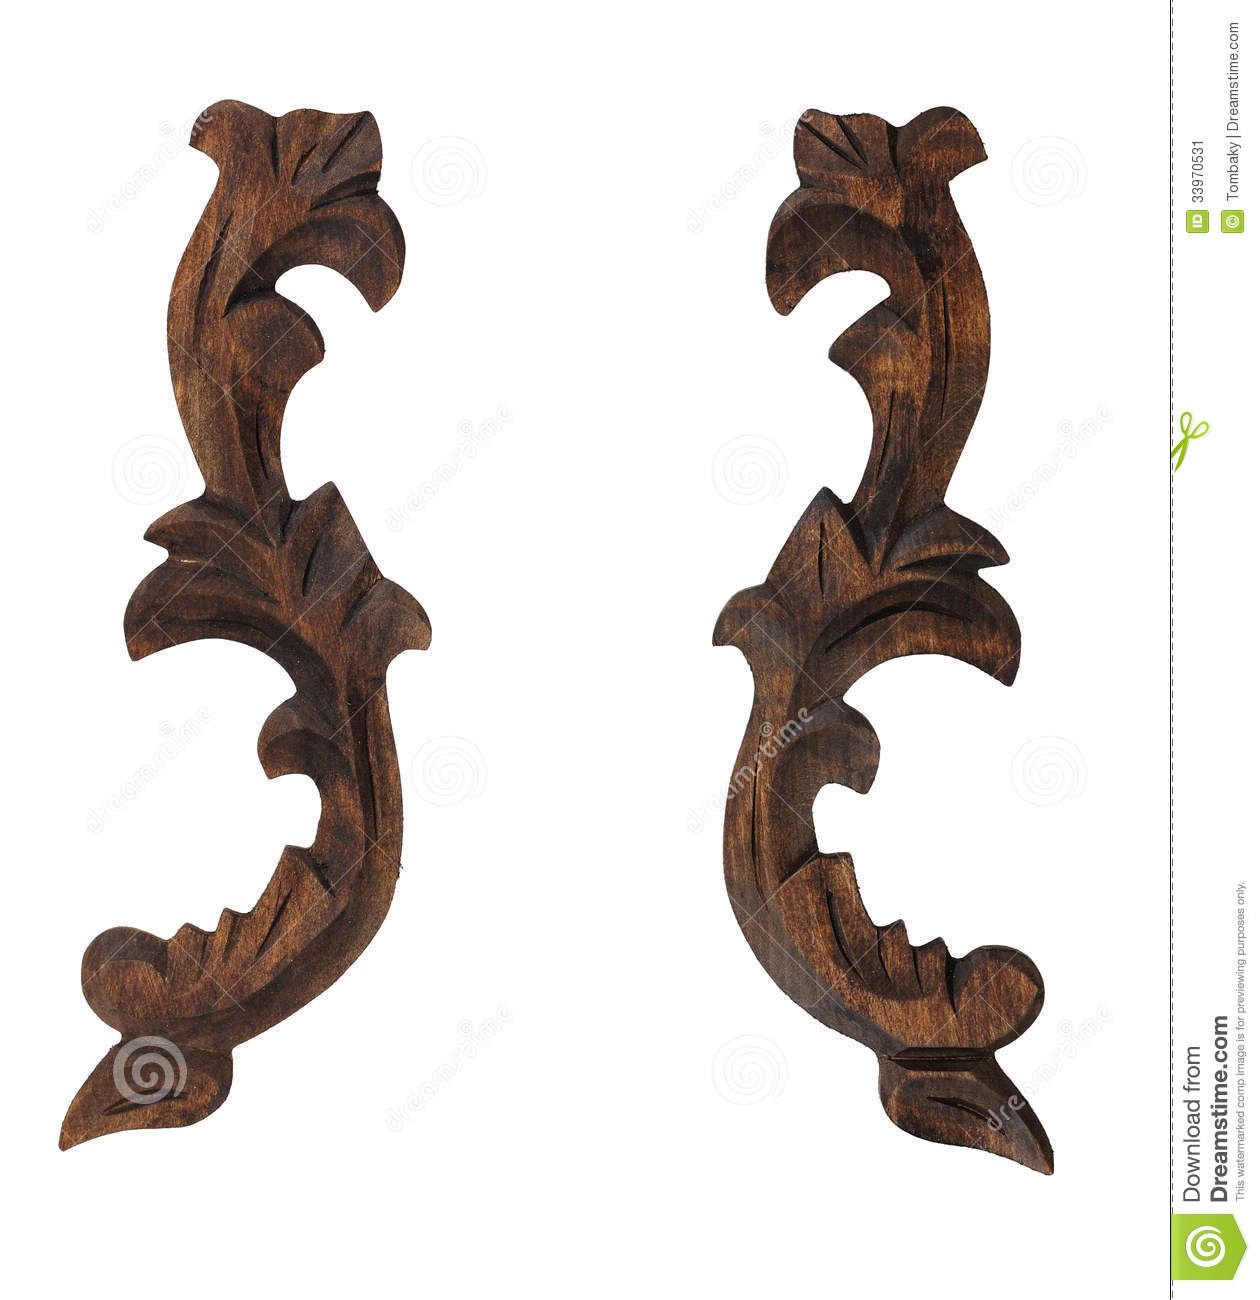 Decorative Wooden Ornament Pattern Stock Image